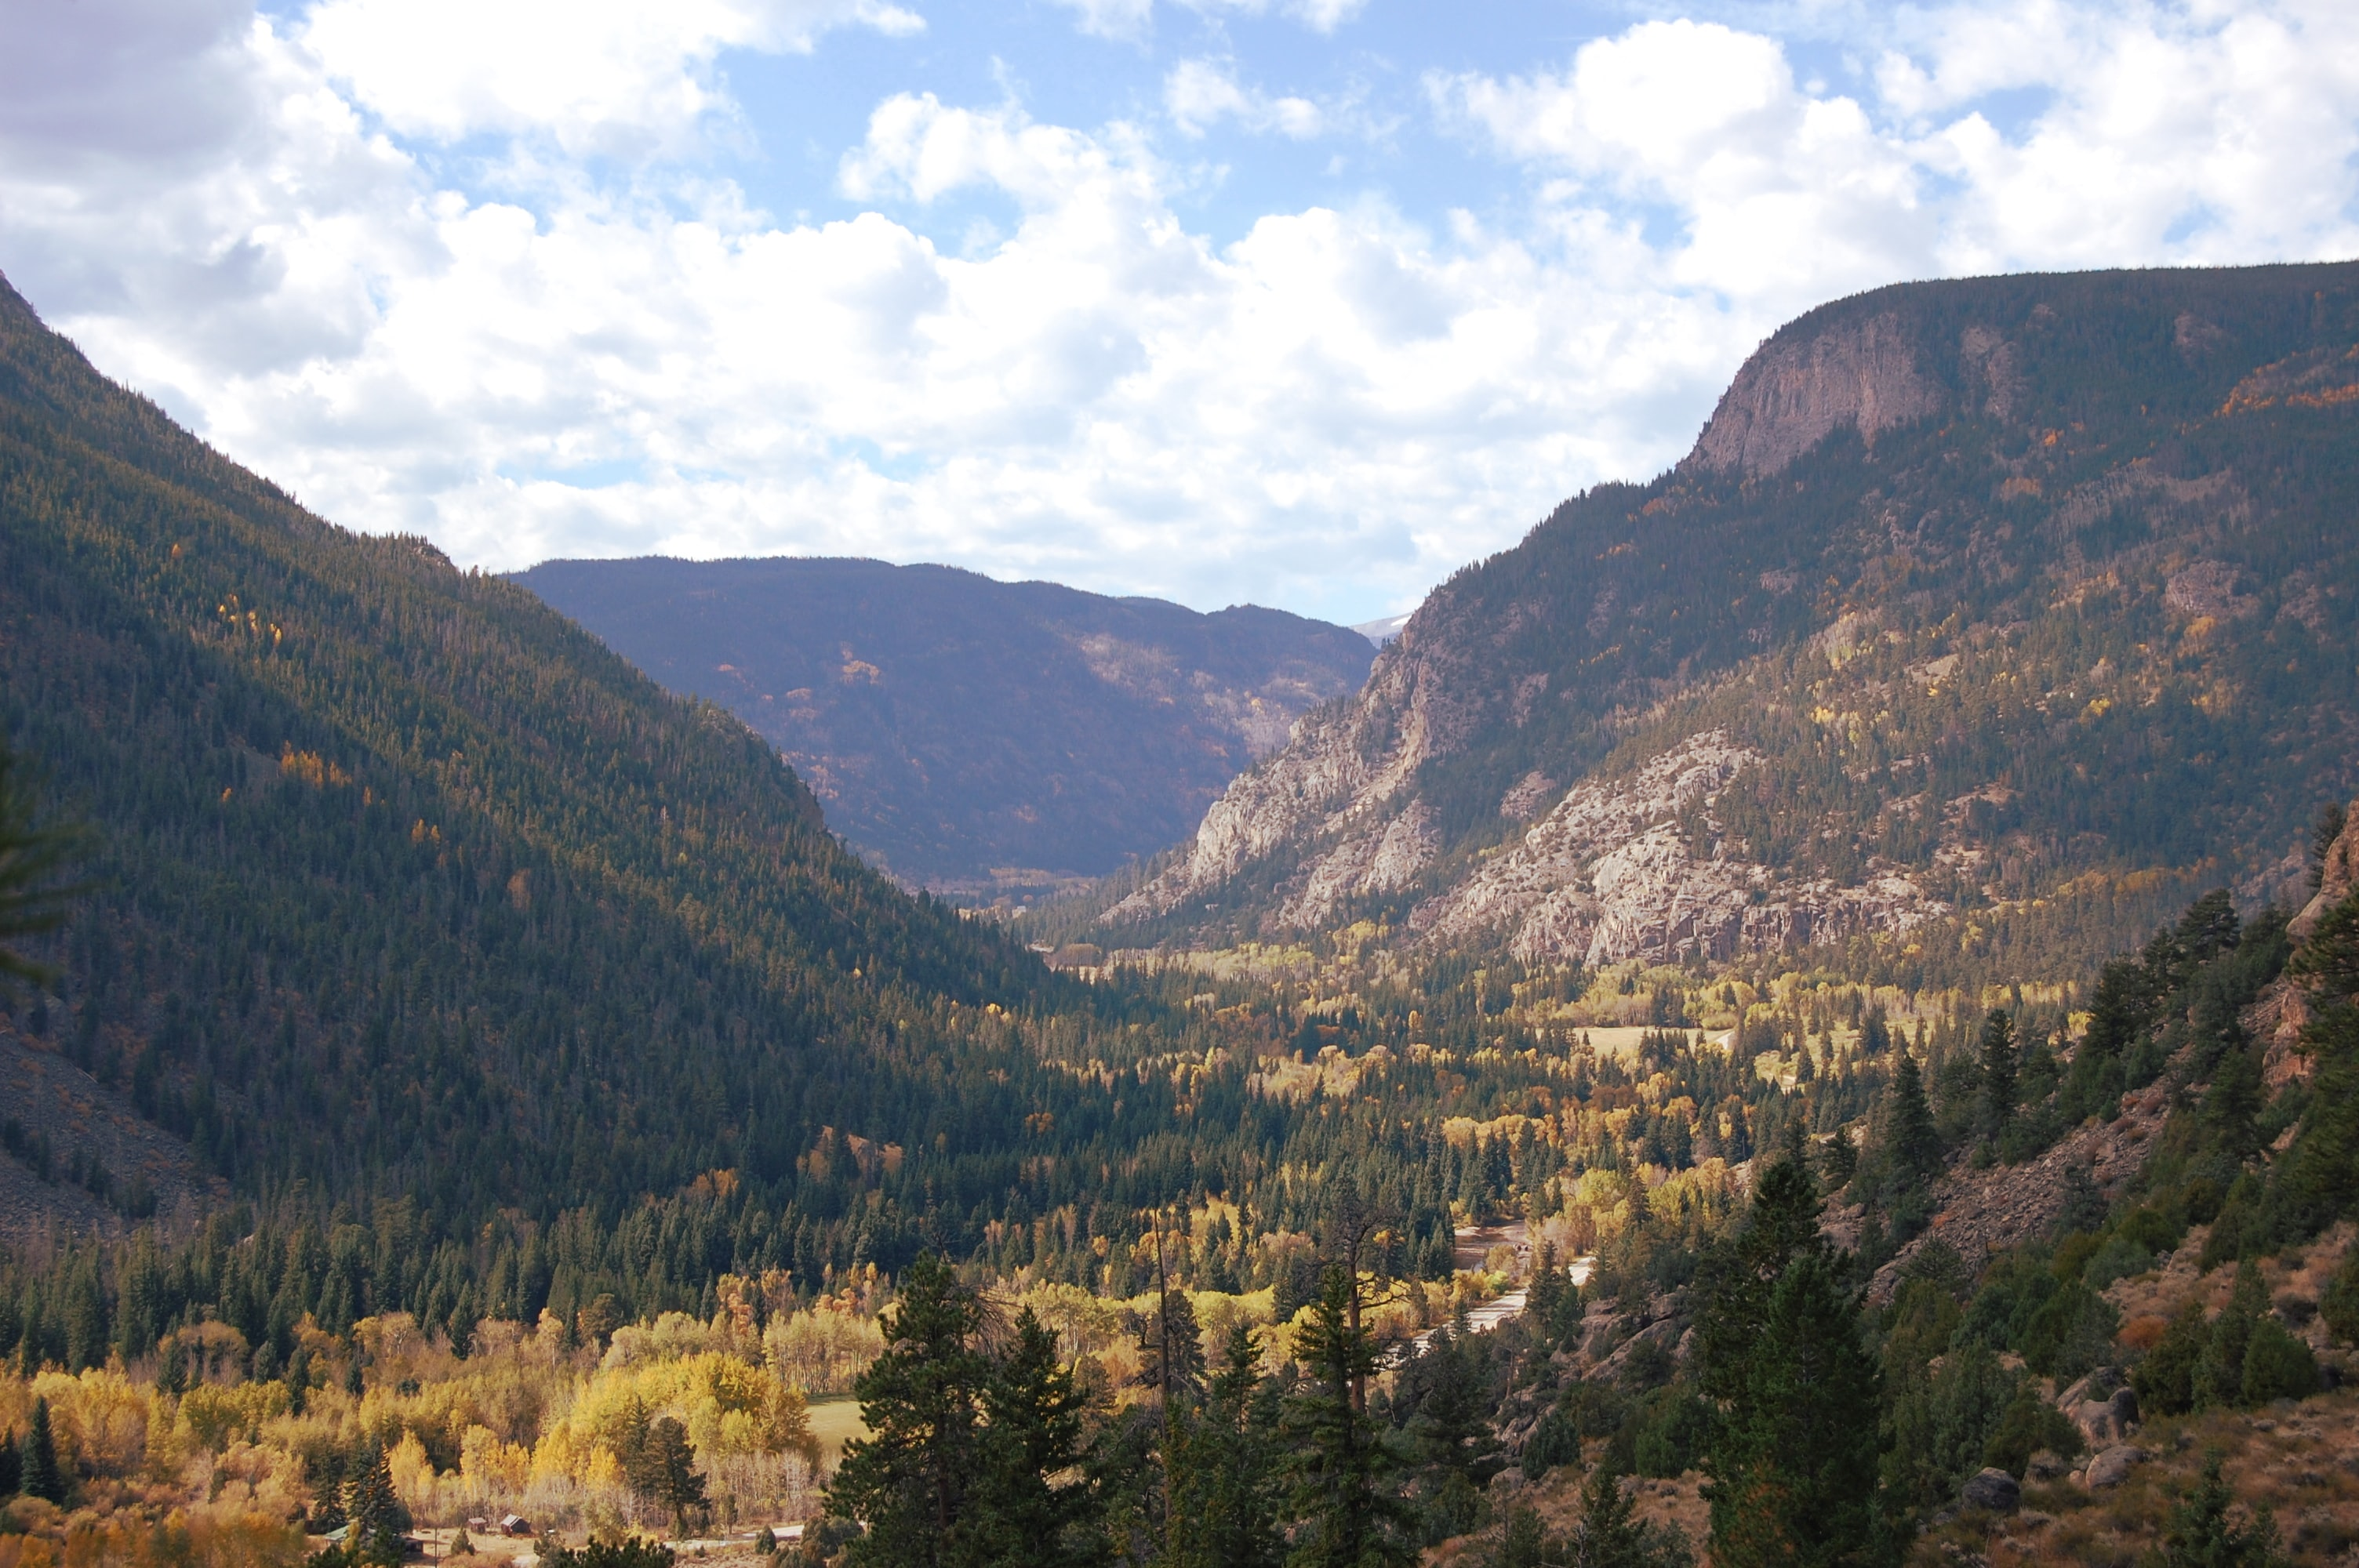 A wooded mountain valley in Colorado in the autumn